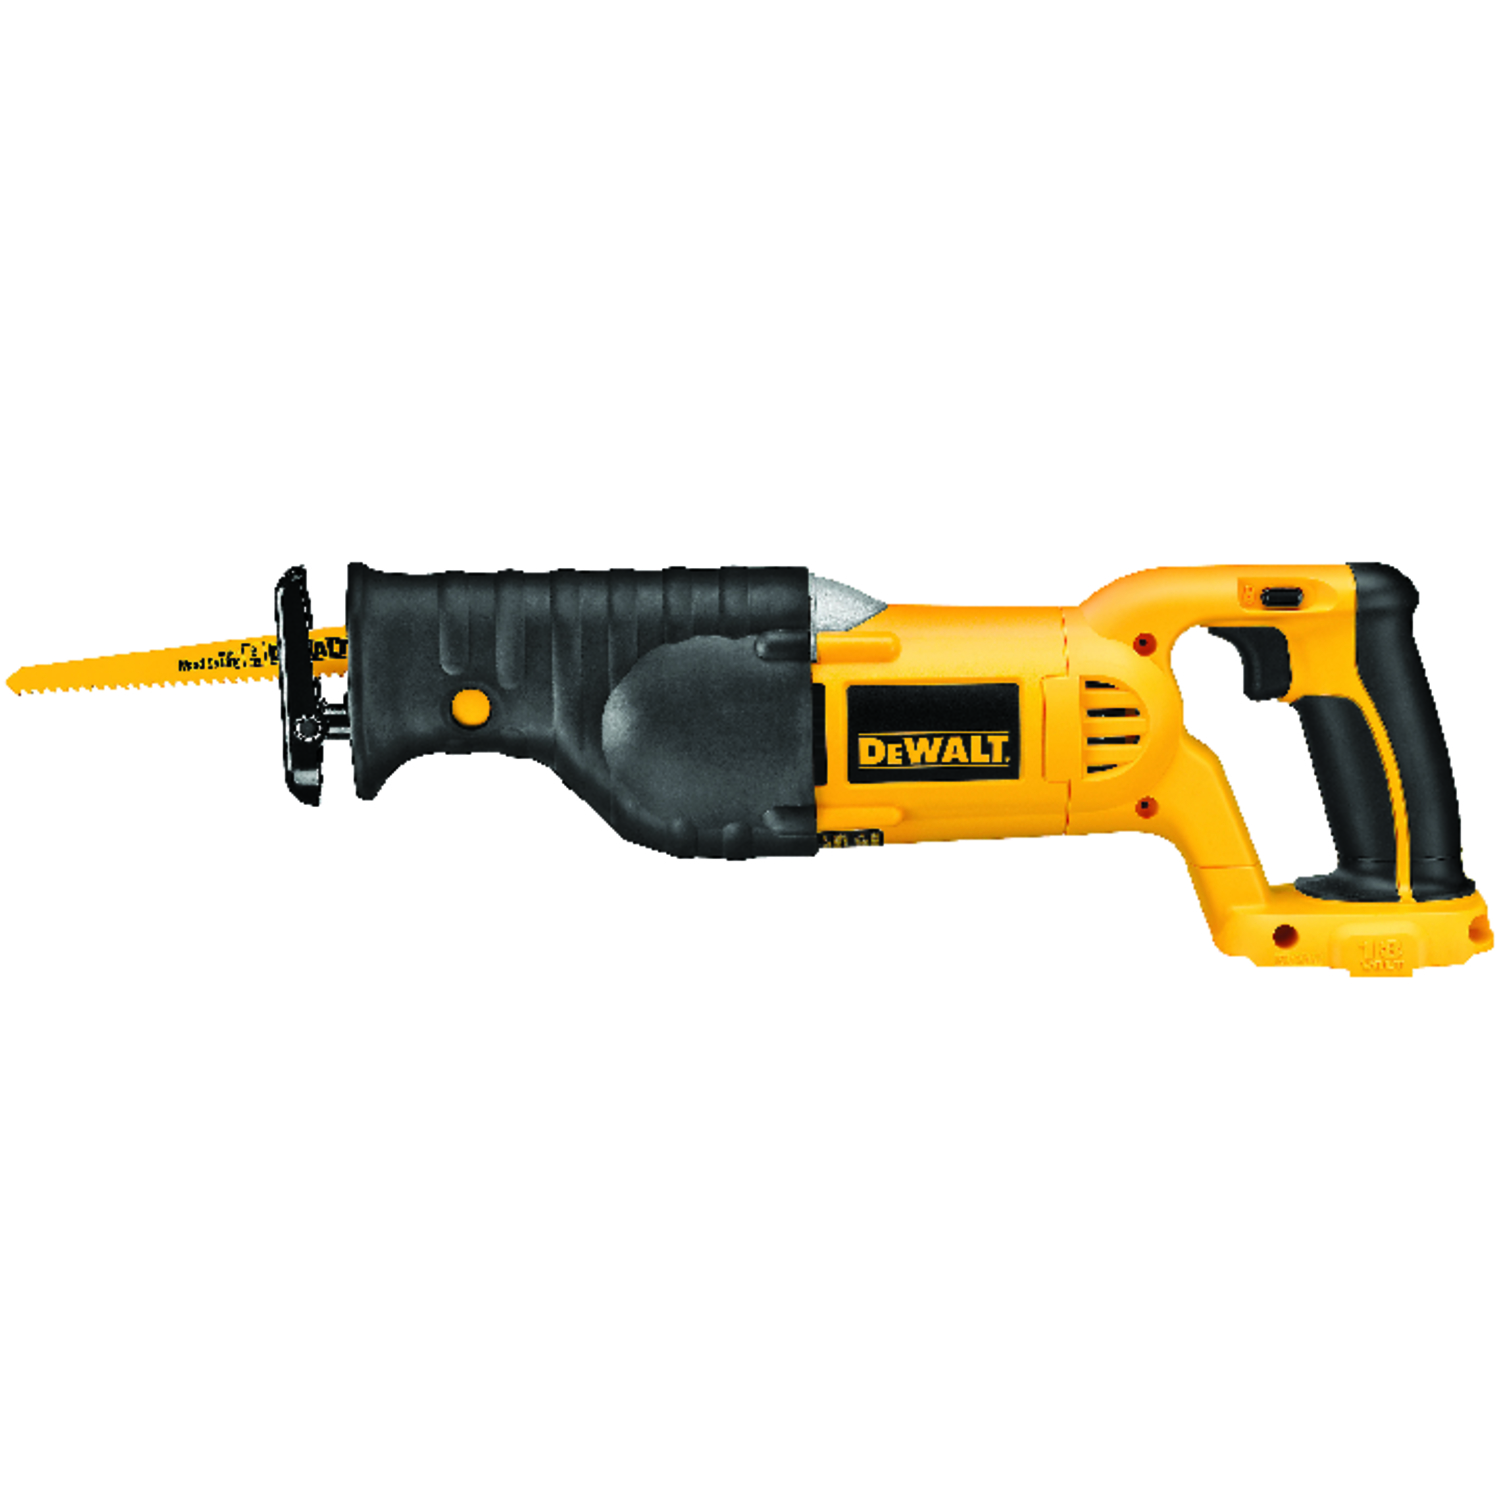 DeWalt  1-1/8 in. Cordless  18 volts 3000 spm Reciprocating Saw